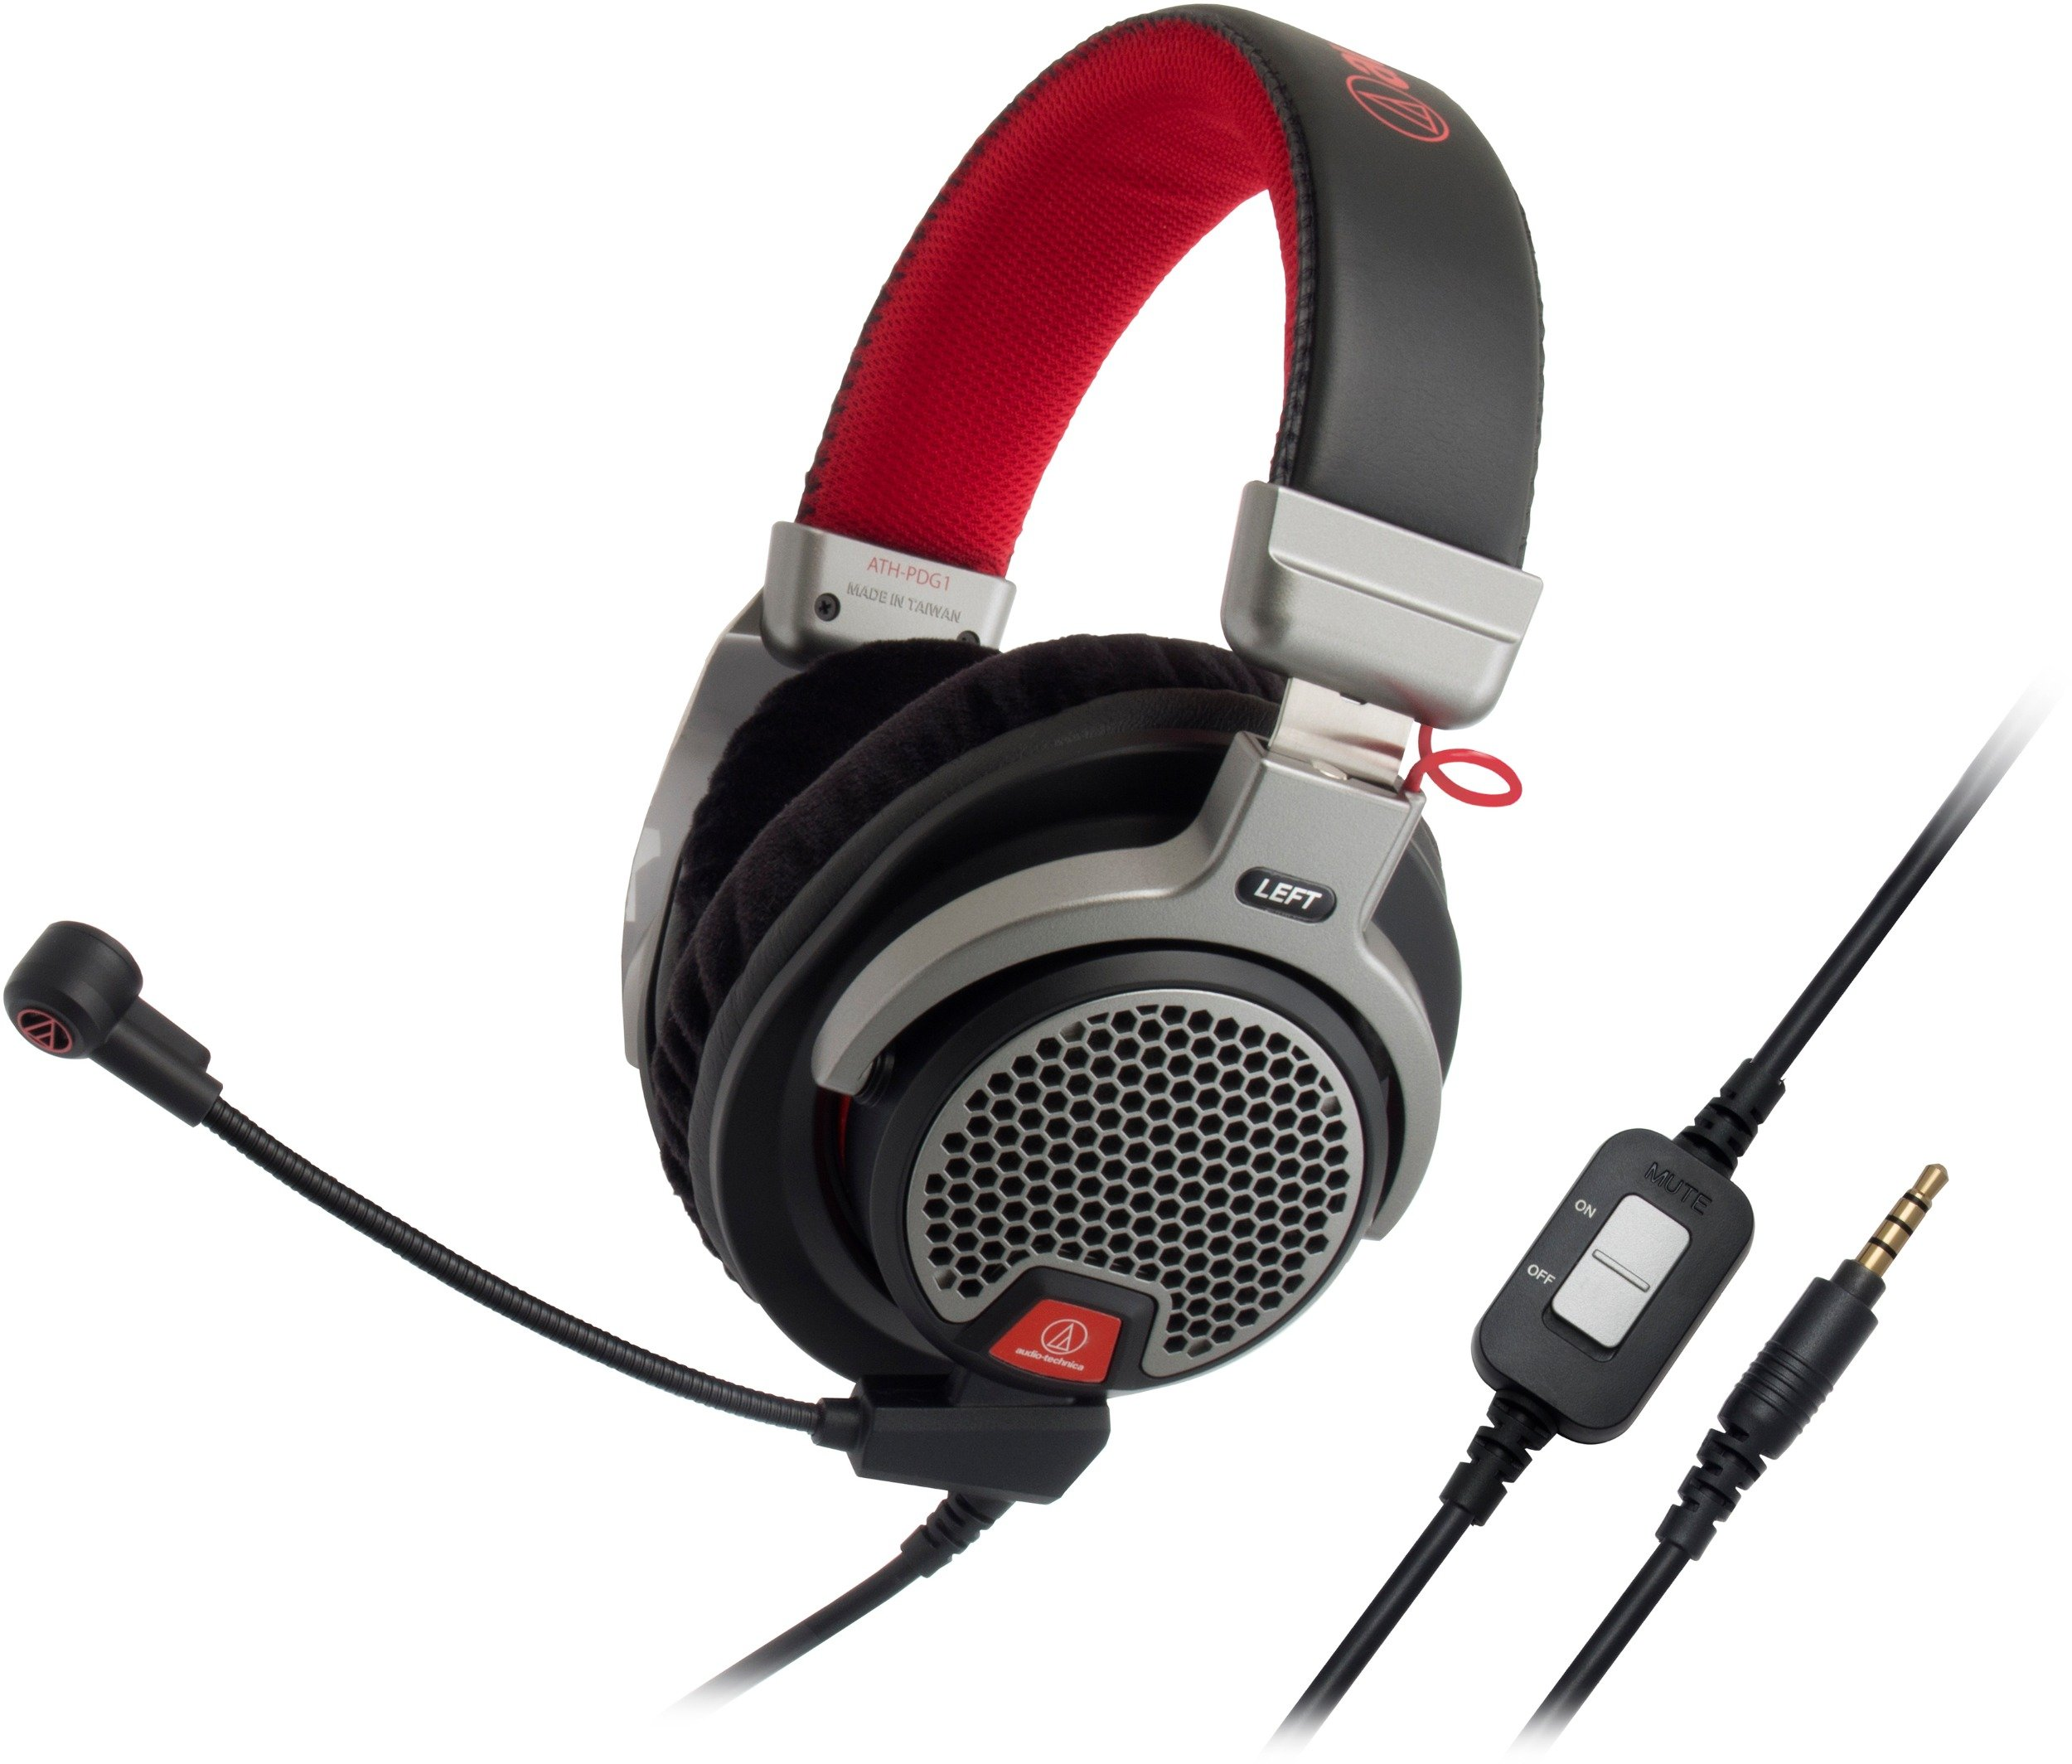 Audio-Technica ATH-PDG1 OpenBack Gaming Headset w Watch Dogs 2 for Playstation 4 by Audio-Technica (Image #2)